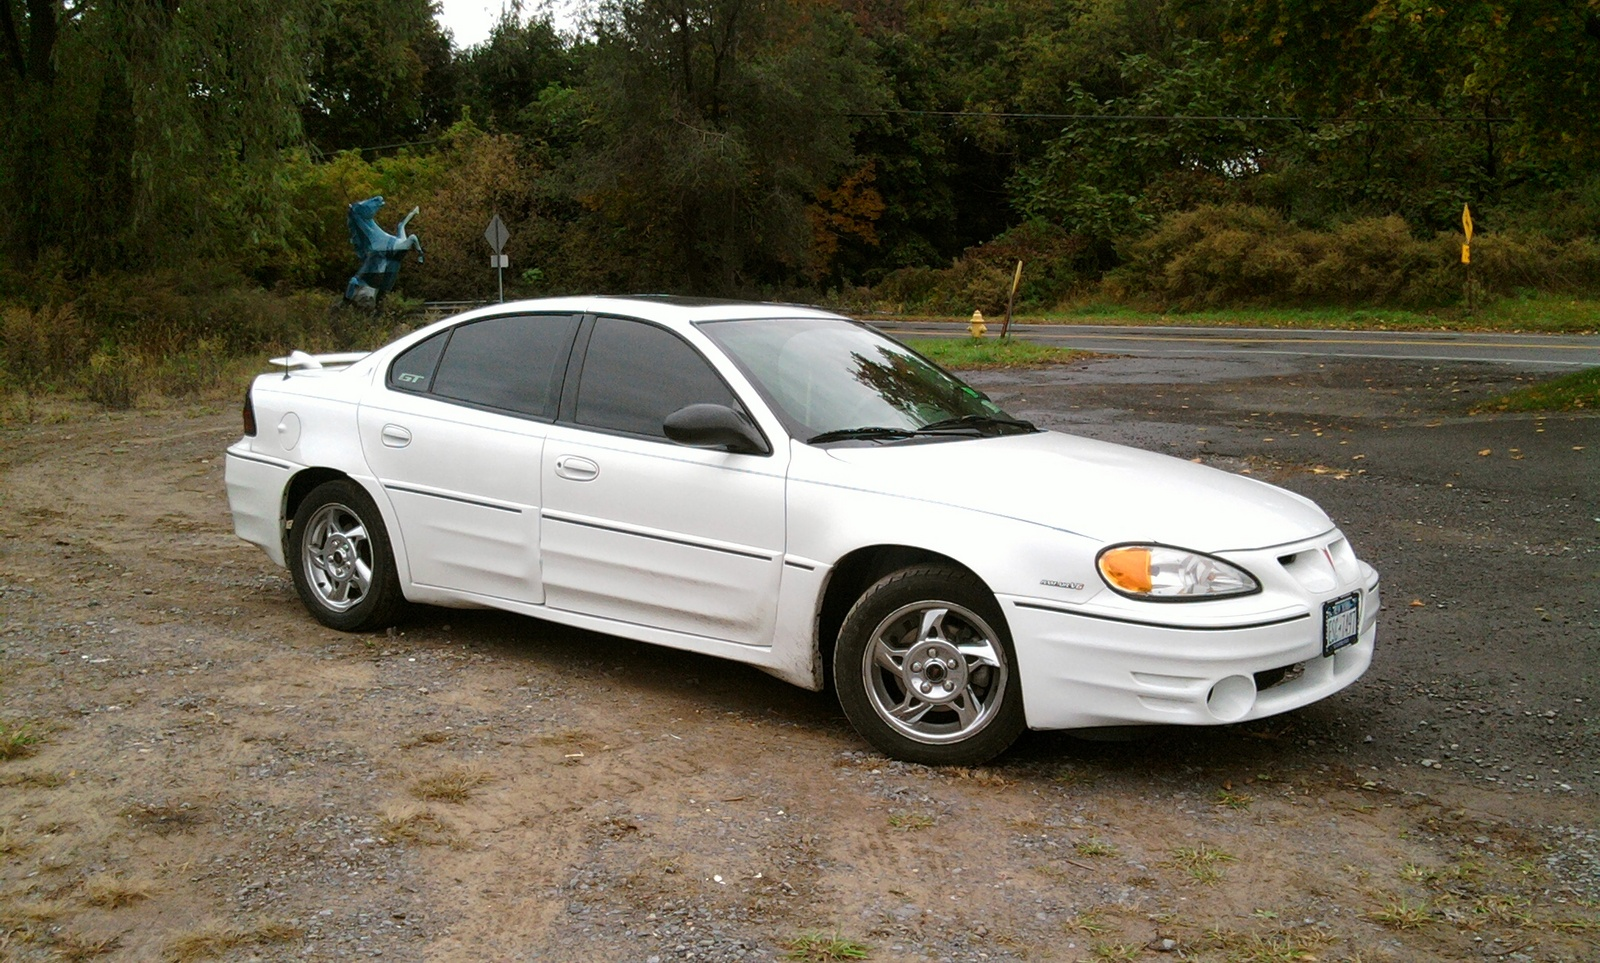 2004 Pontiac Grand AM Diagram http://www.cargurus.com/Cars/2004-Pontiac-Grand-Am-GT-Pictures-t16791_pi35784993